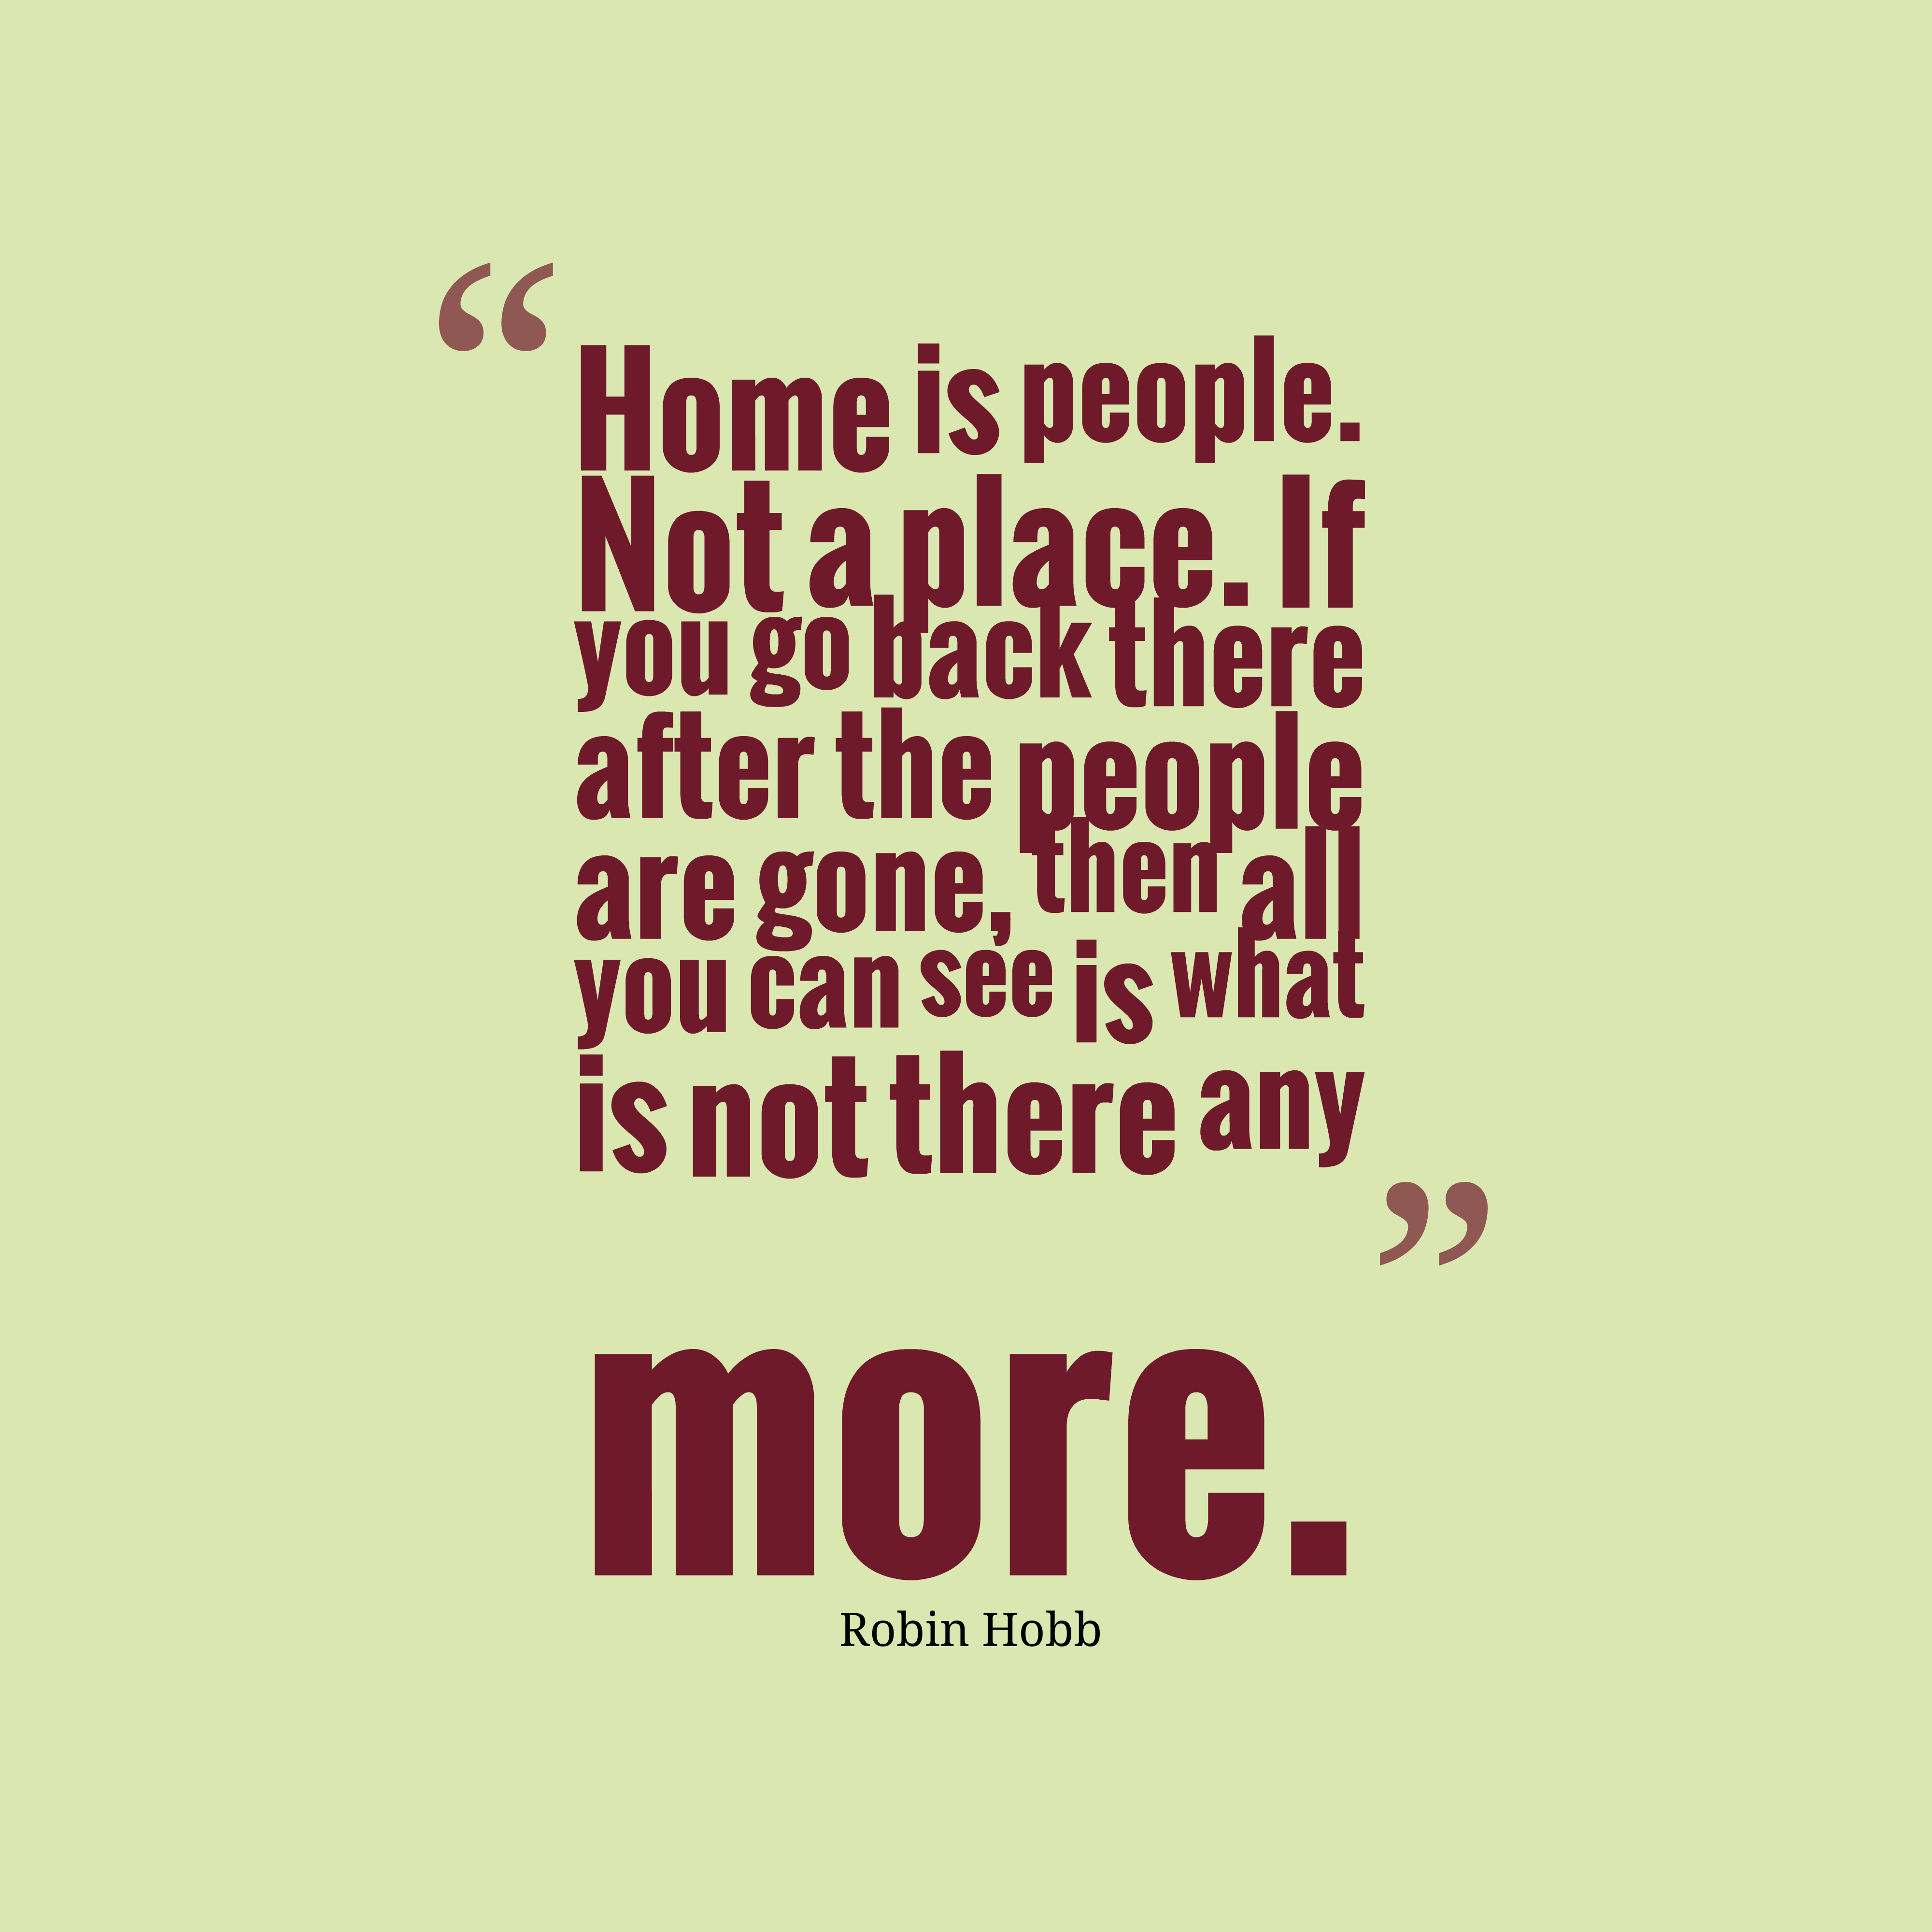 Quotes image of Home is people. Not a place. If you go back there after the people are gone, then all you can see is what is not there any more.